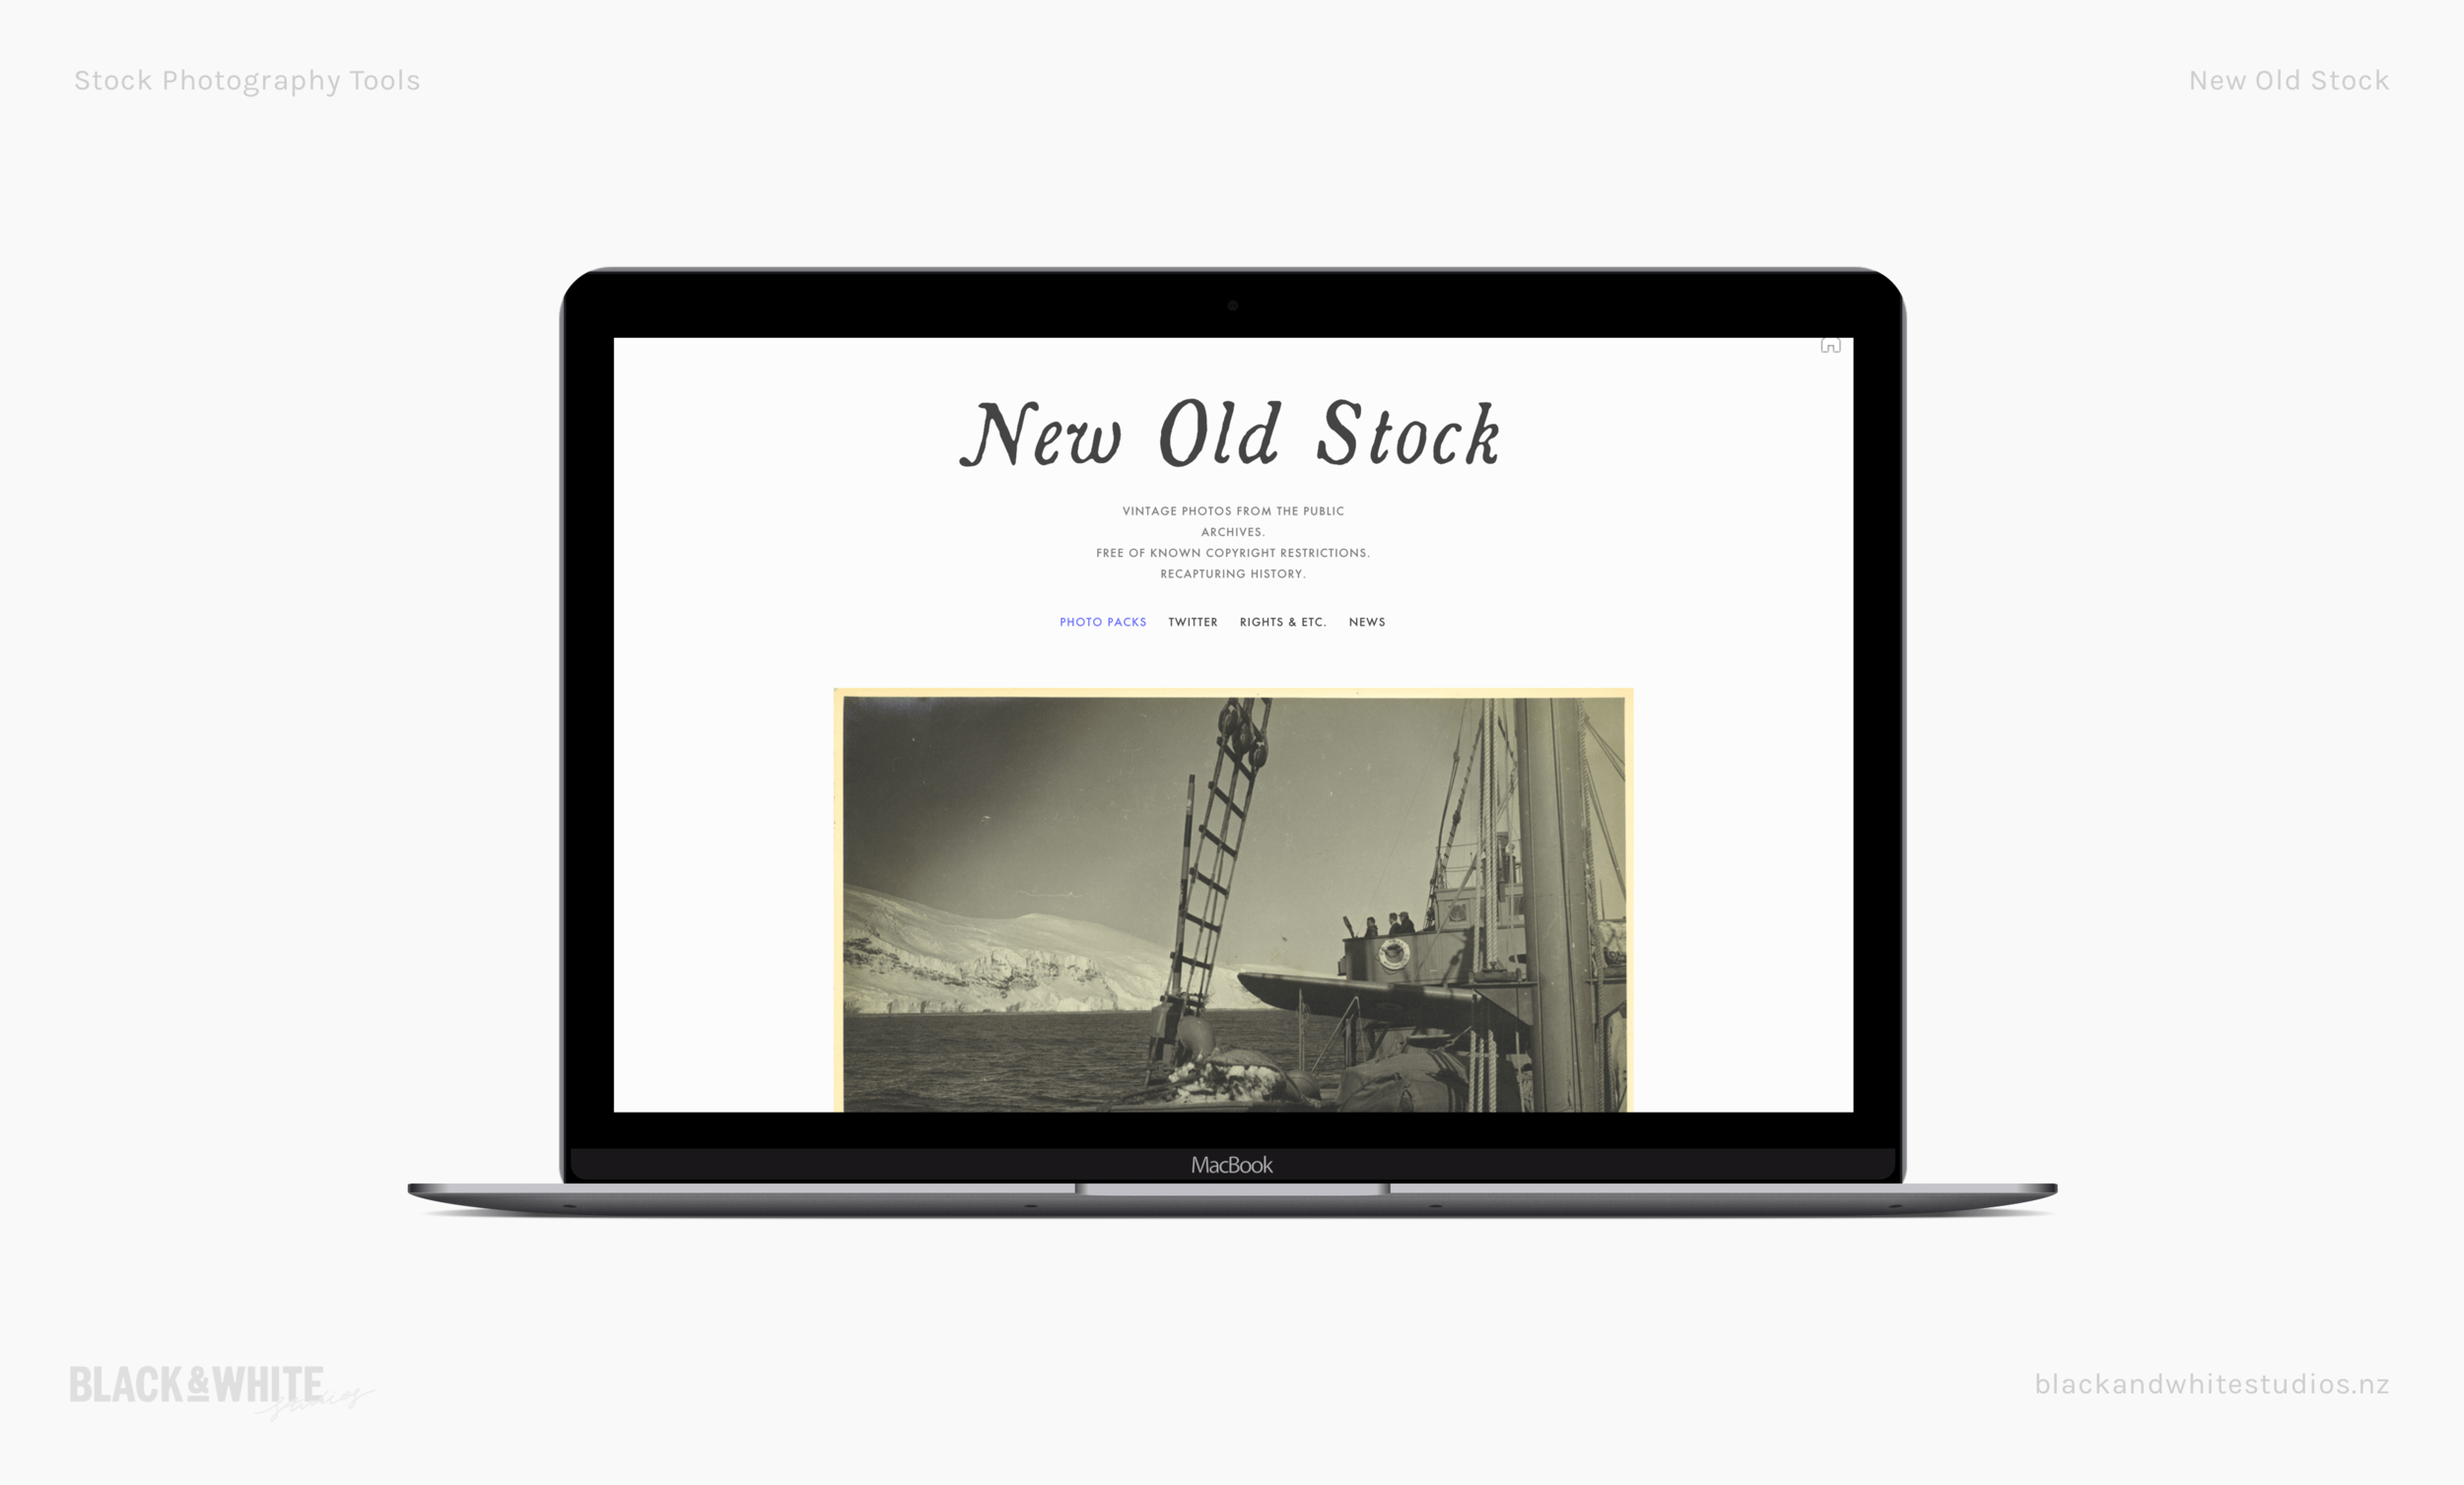 stockphotography-newoldstock.png